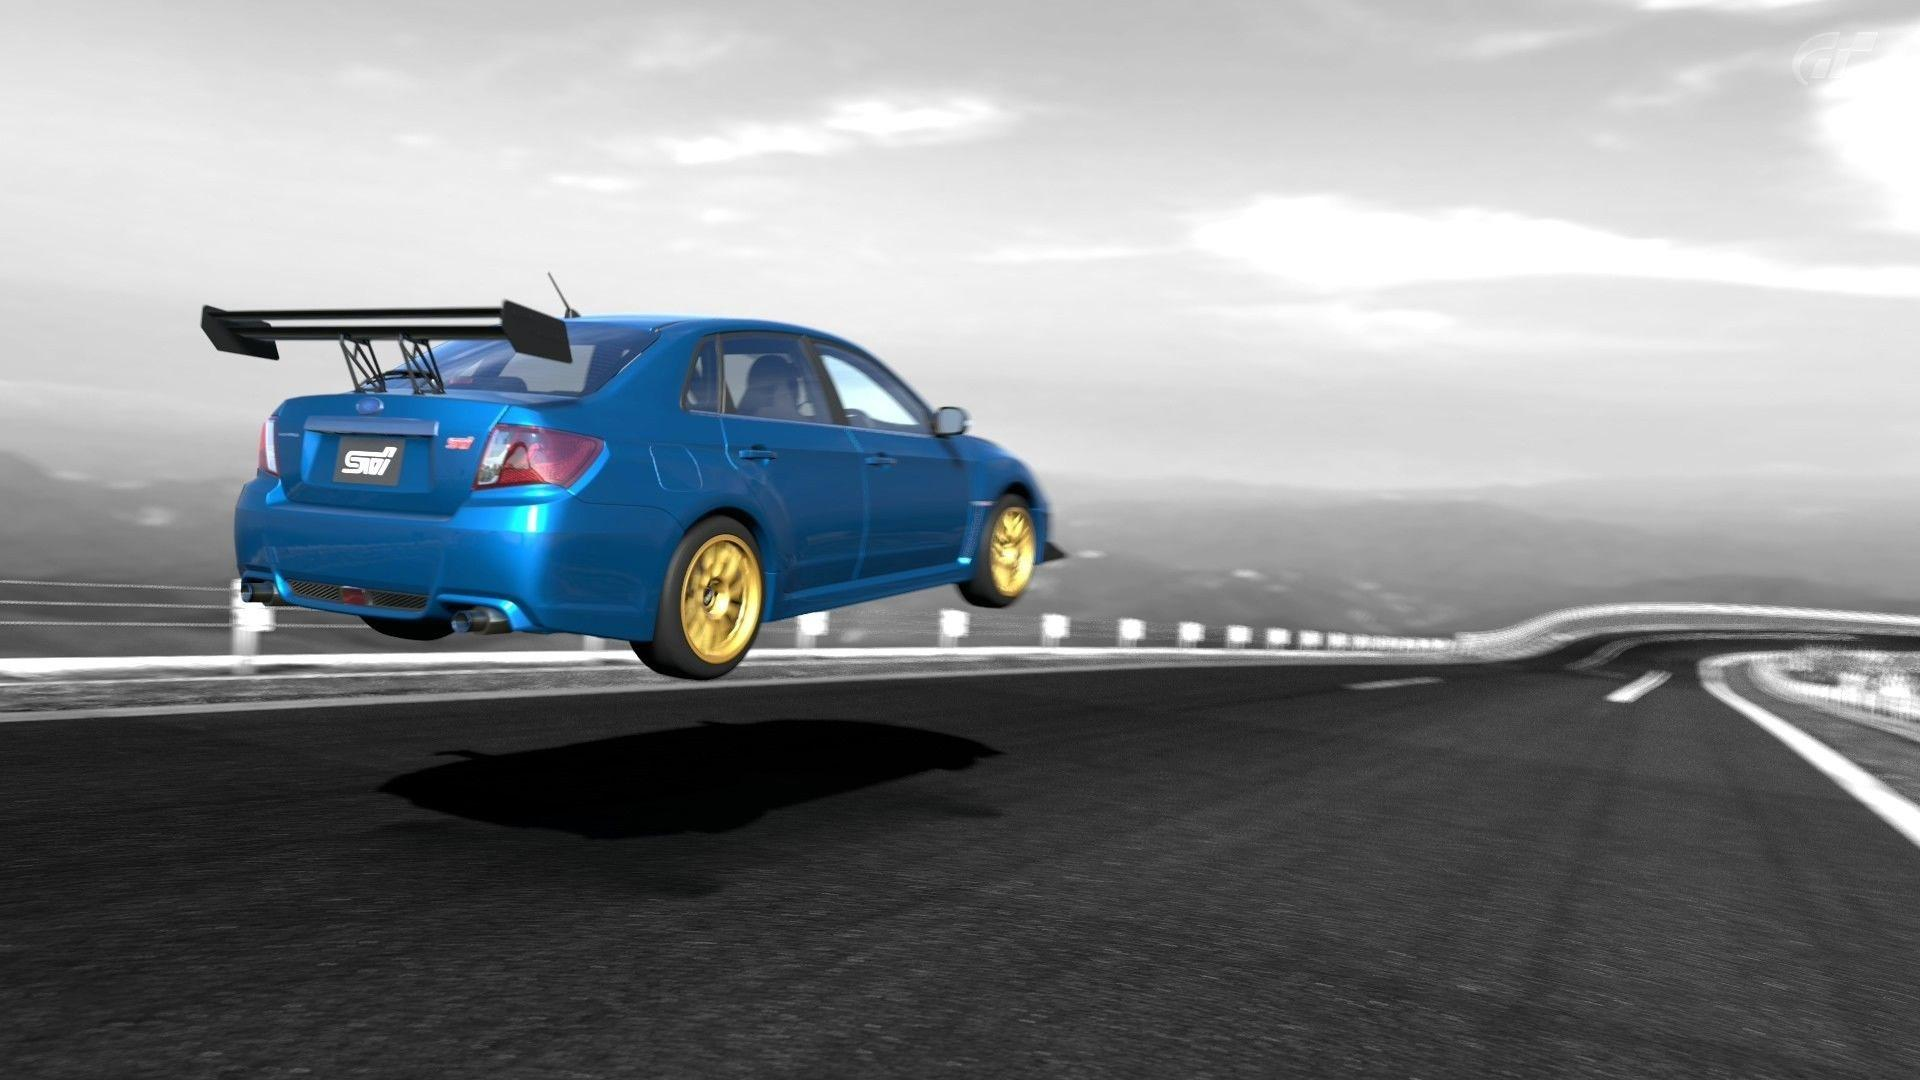 Subaru impreza wrx sti cars video games wallpaper | AllWallpaper.in ...